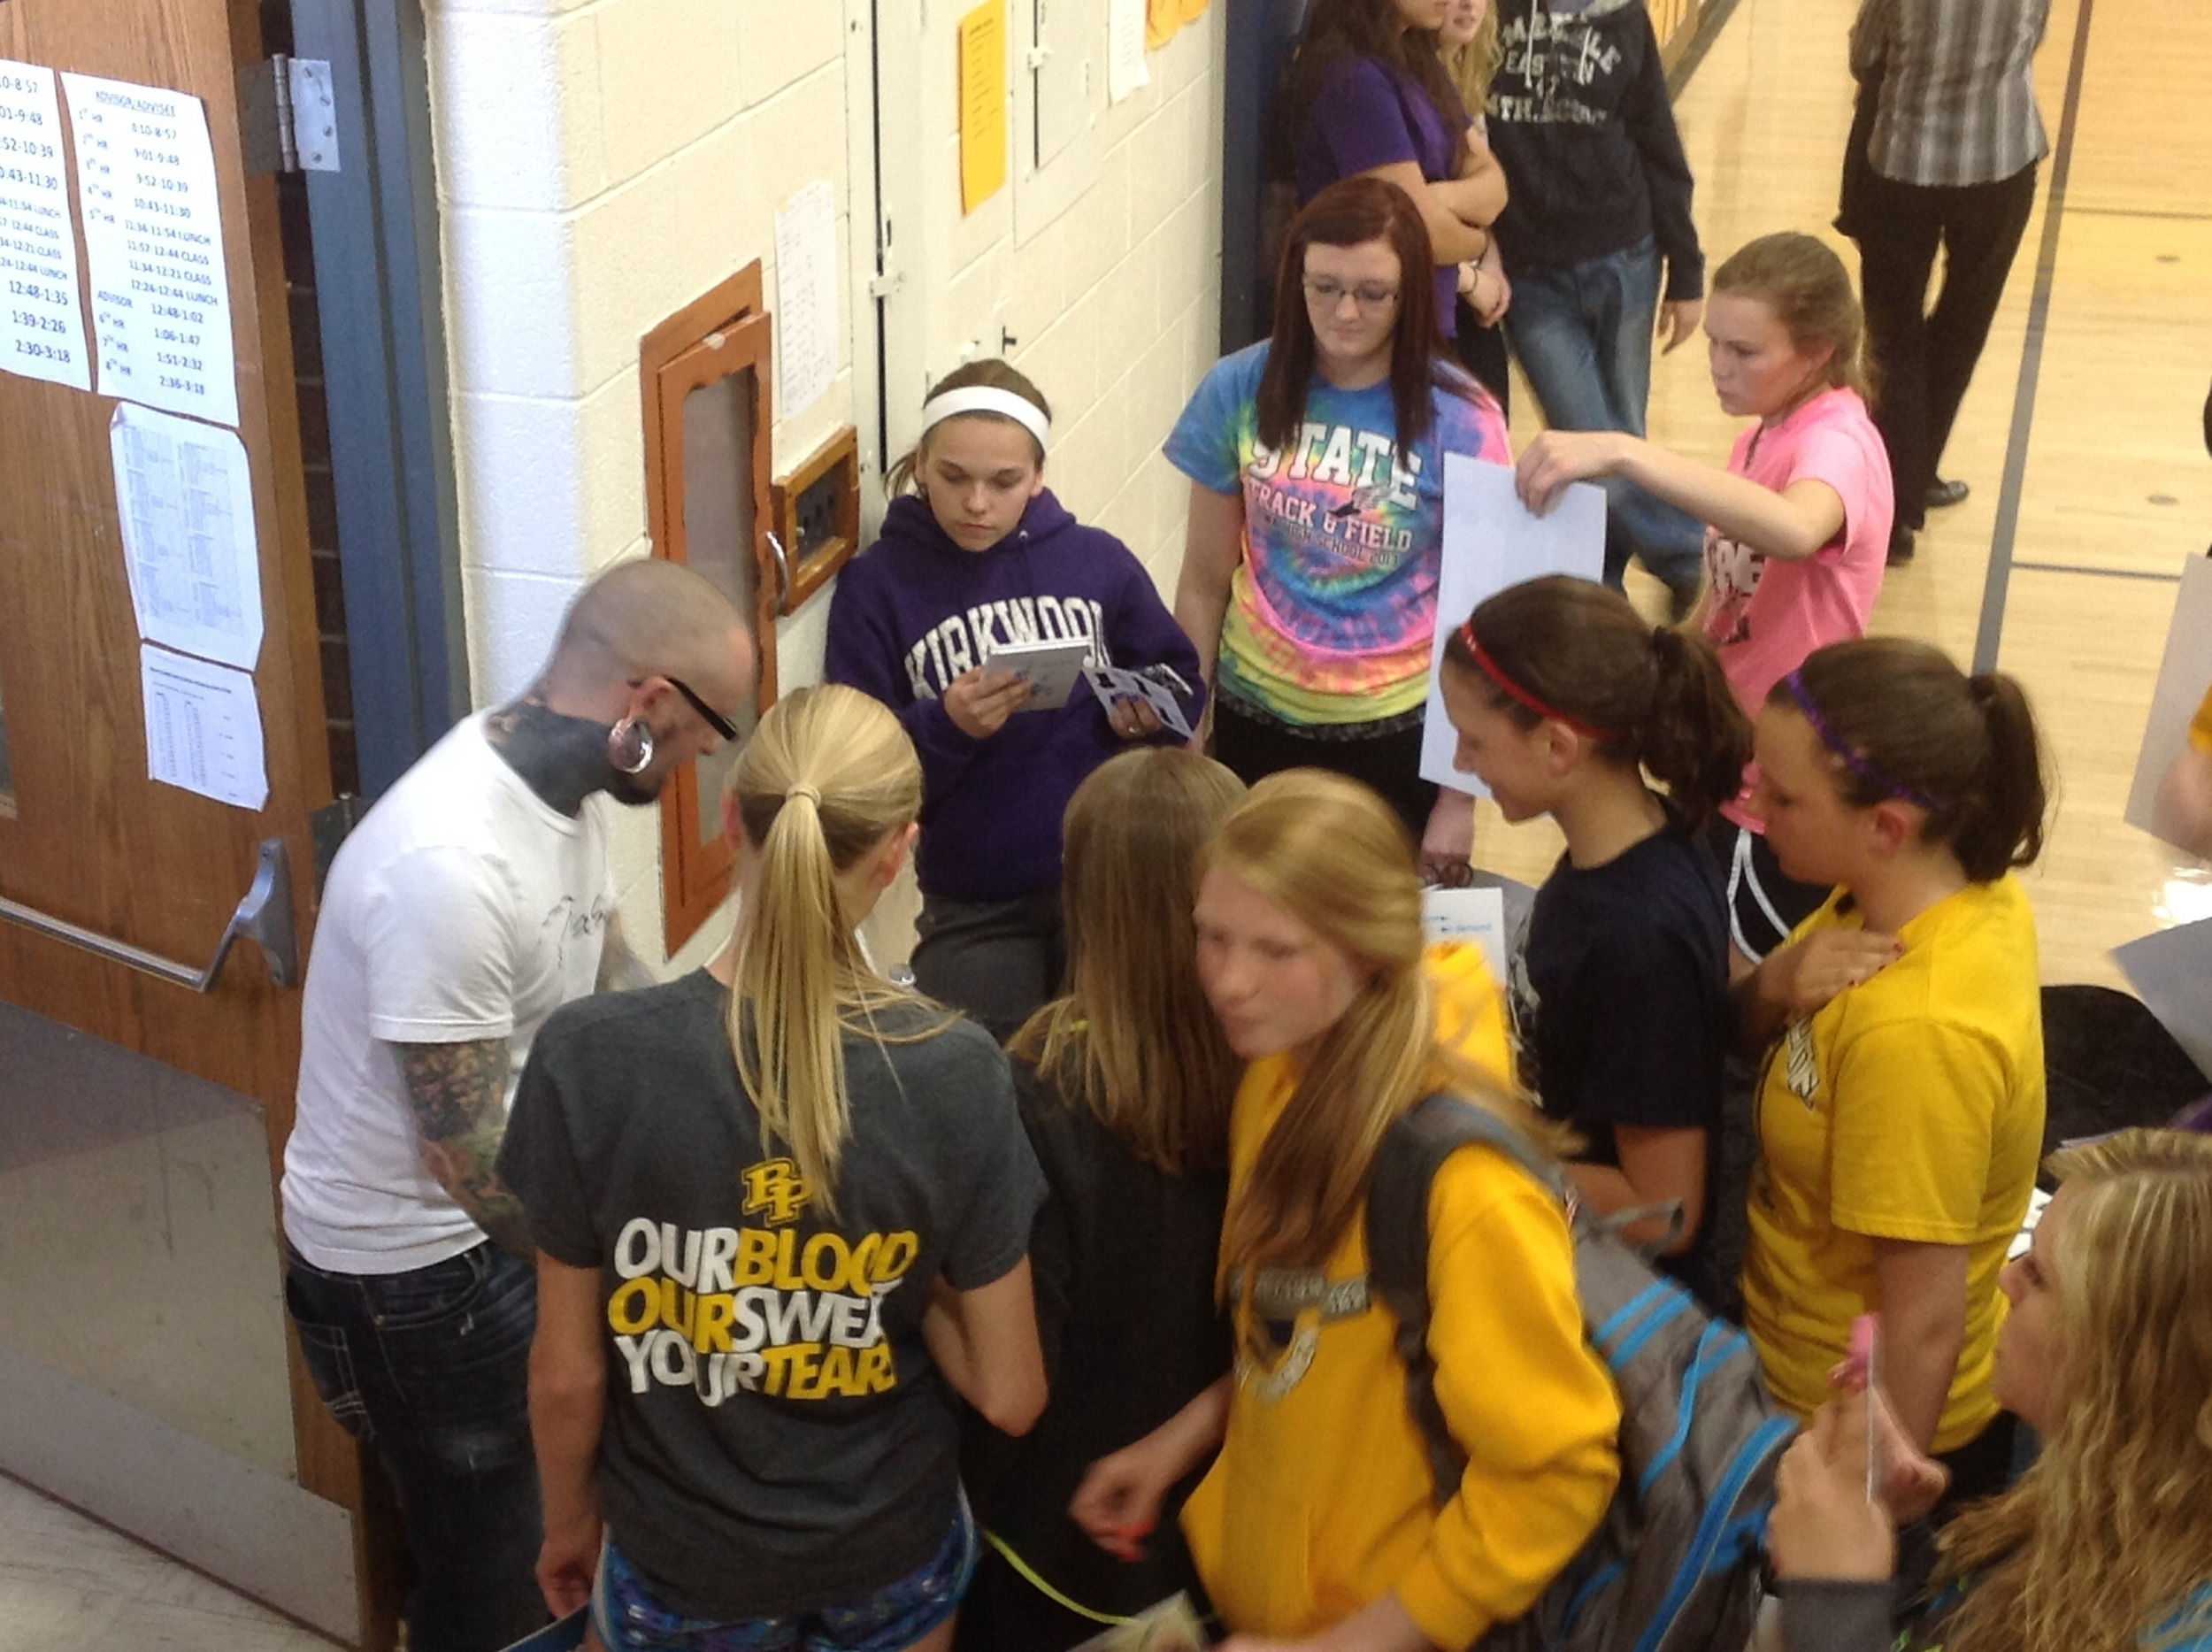 Mingling with Students on the Manners & Motivation Tour!